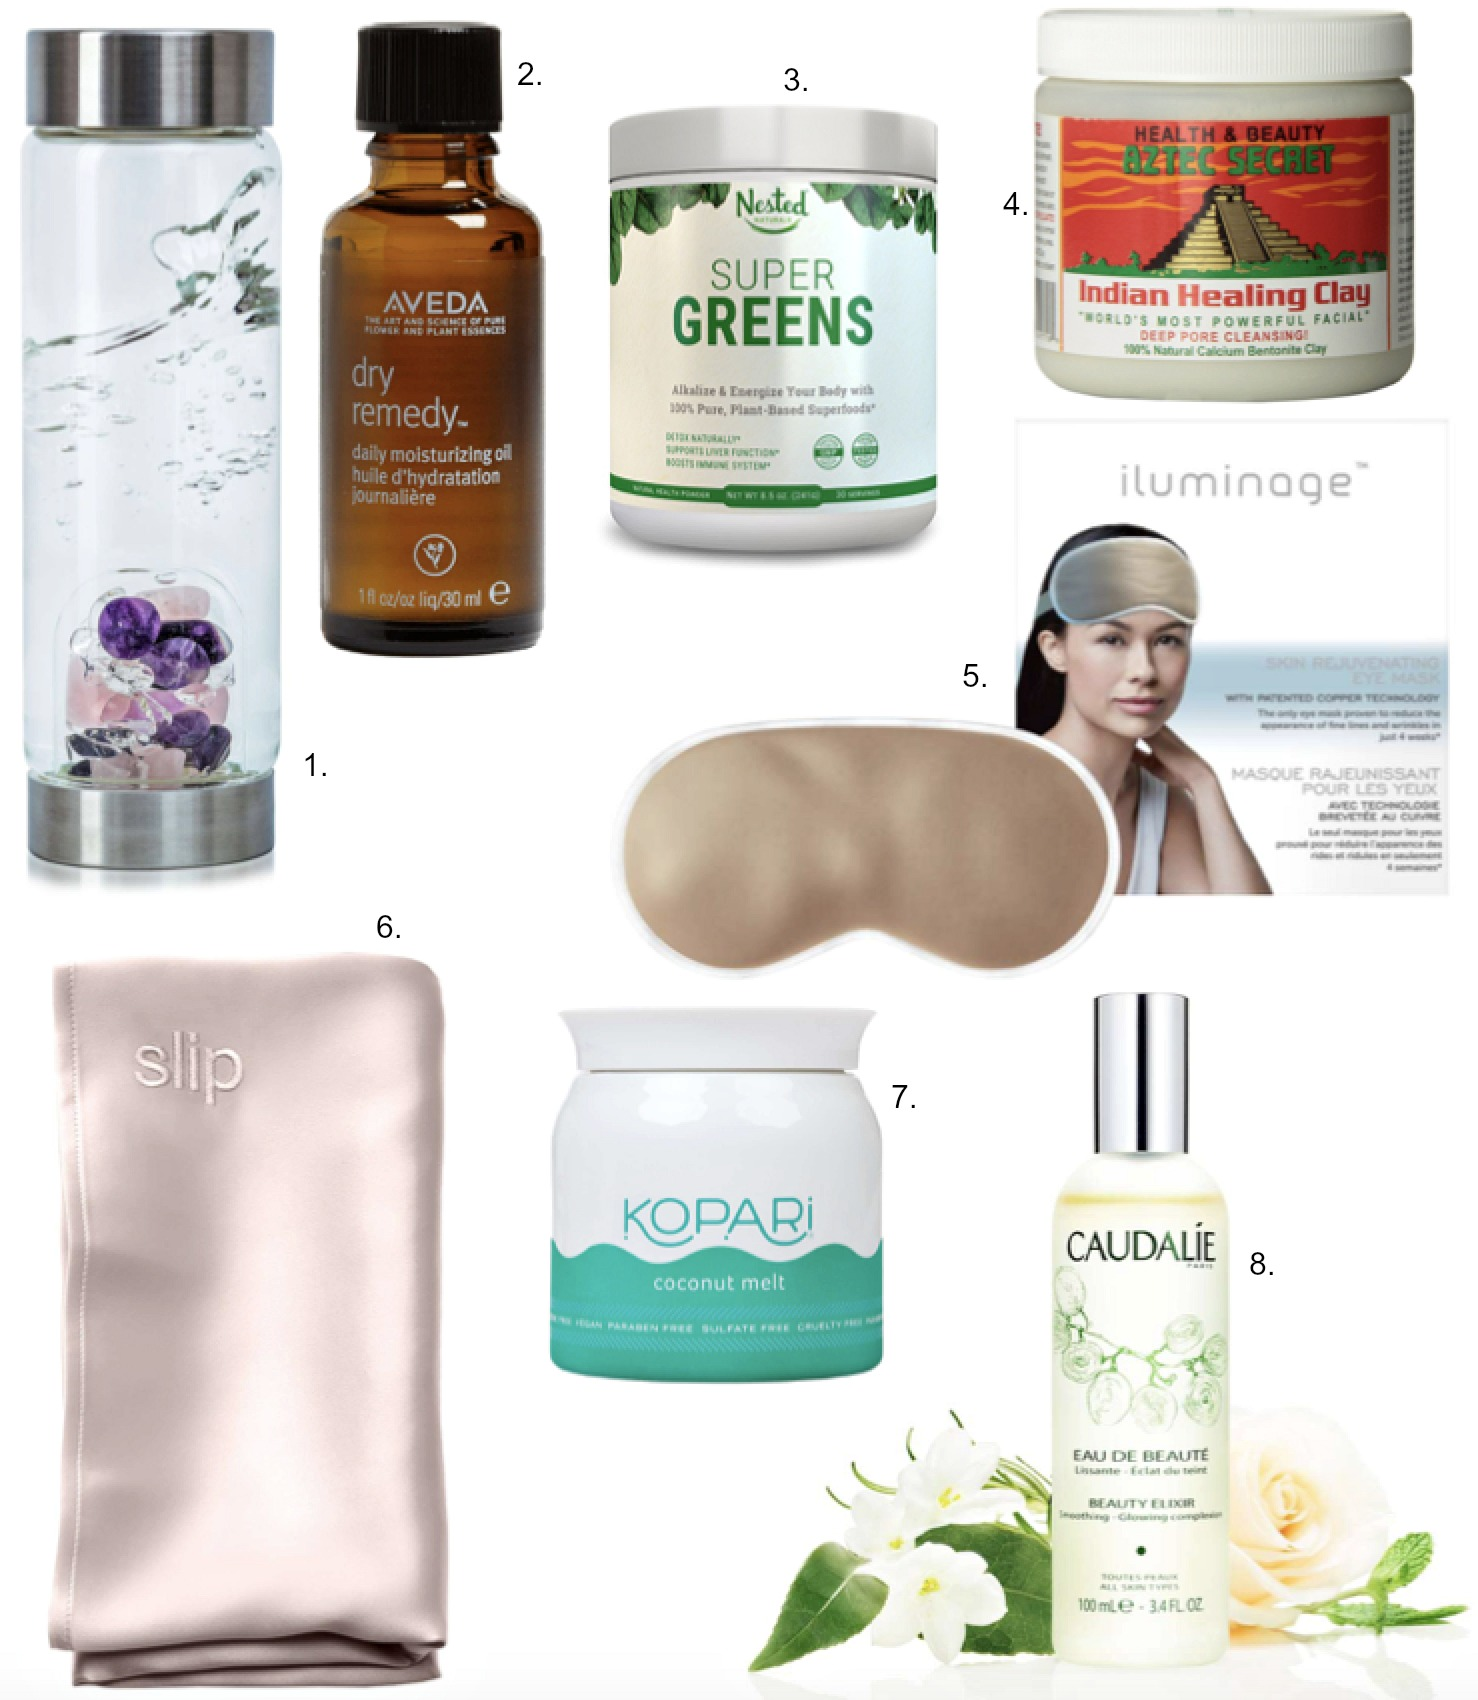 New Year Wellness and Beauty products blogger beauty tips product reviews aztec clay mask glass water bottle with crystals